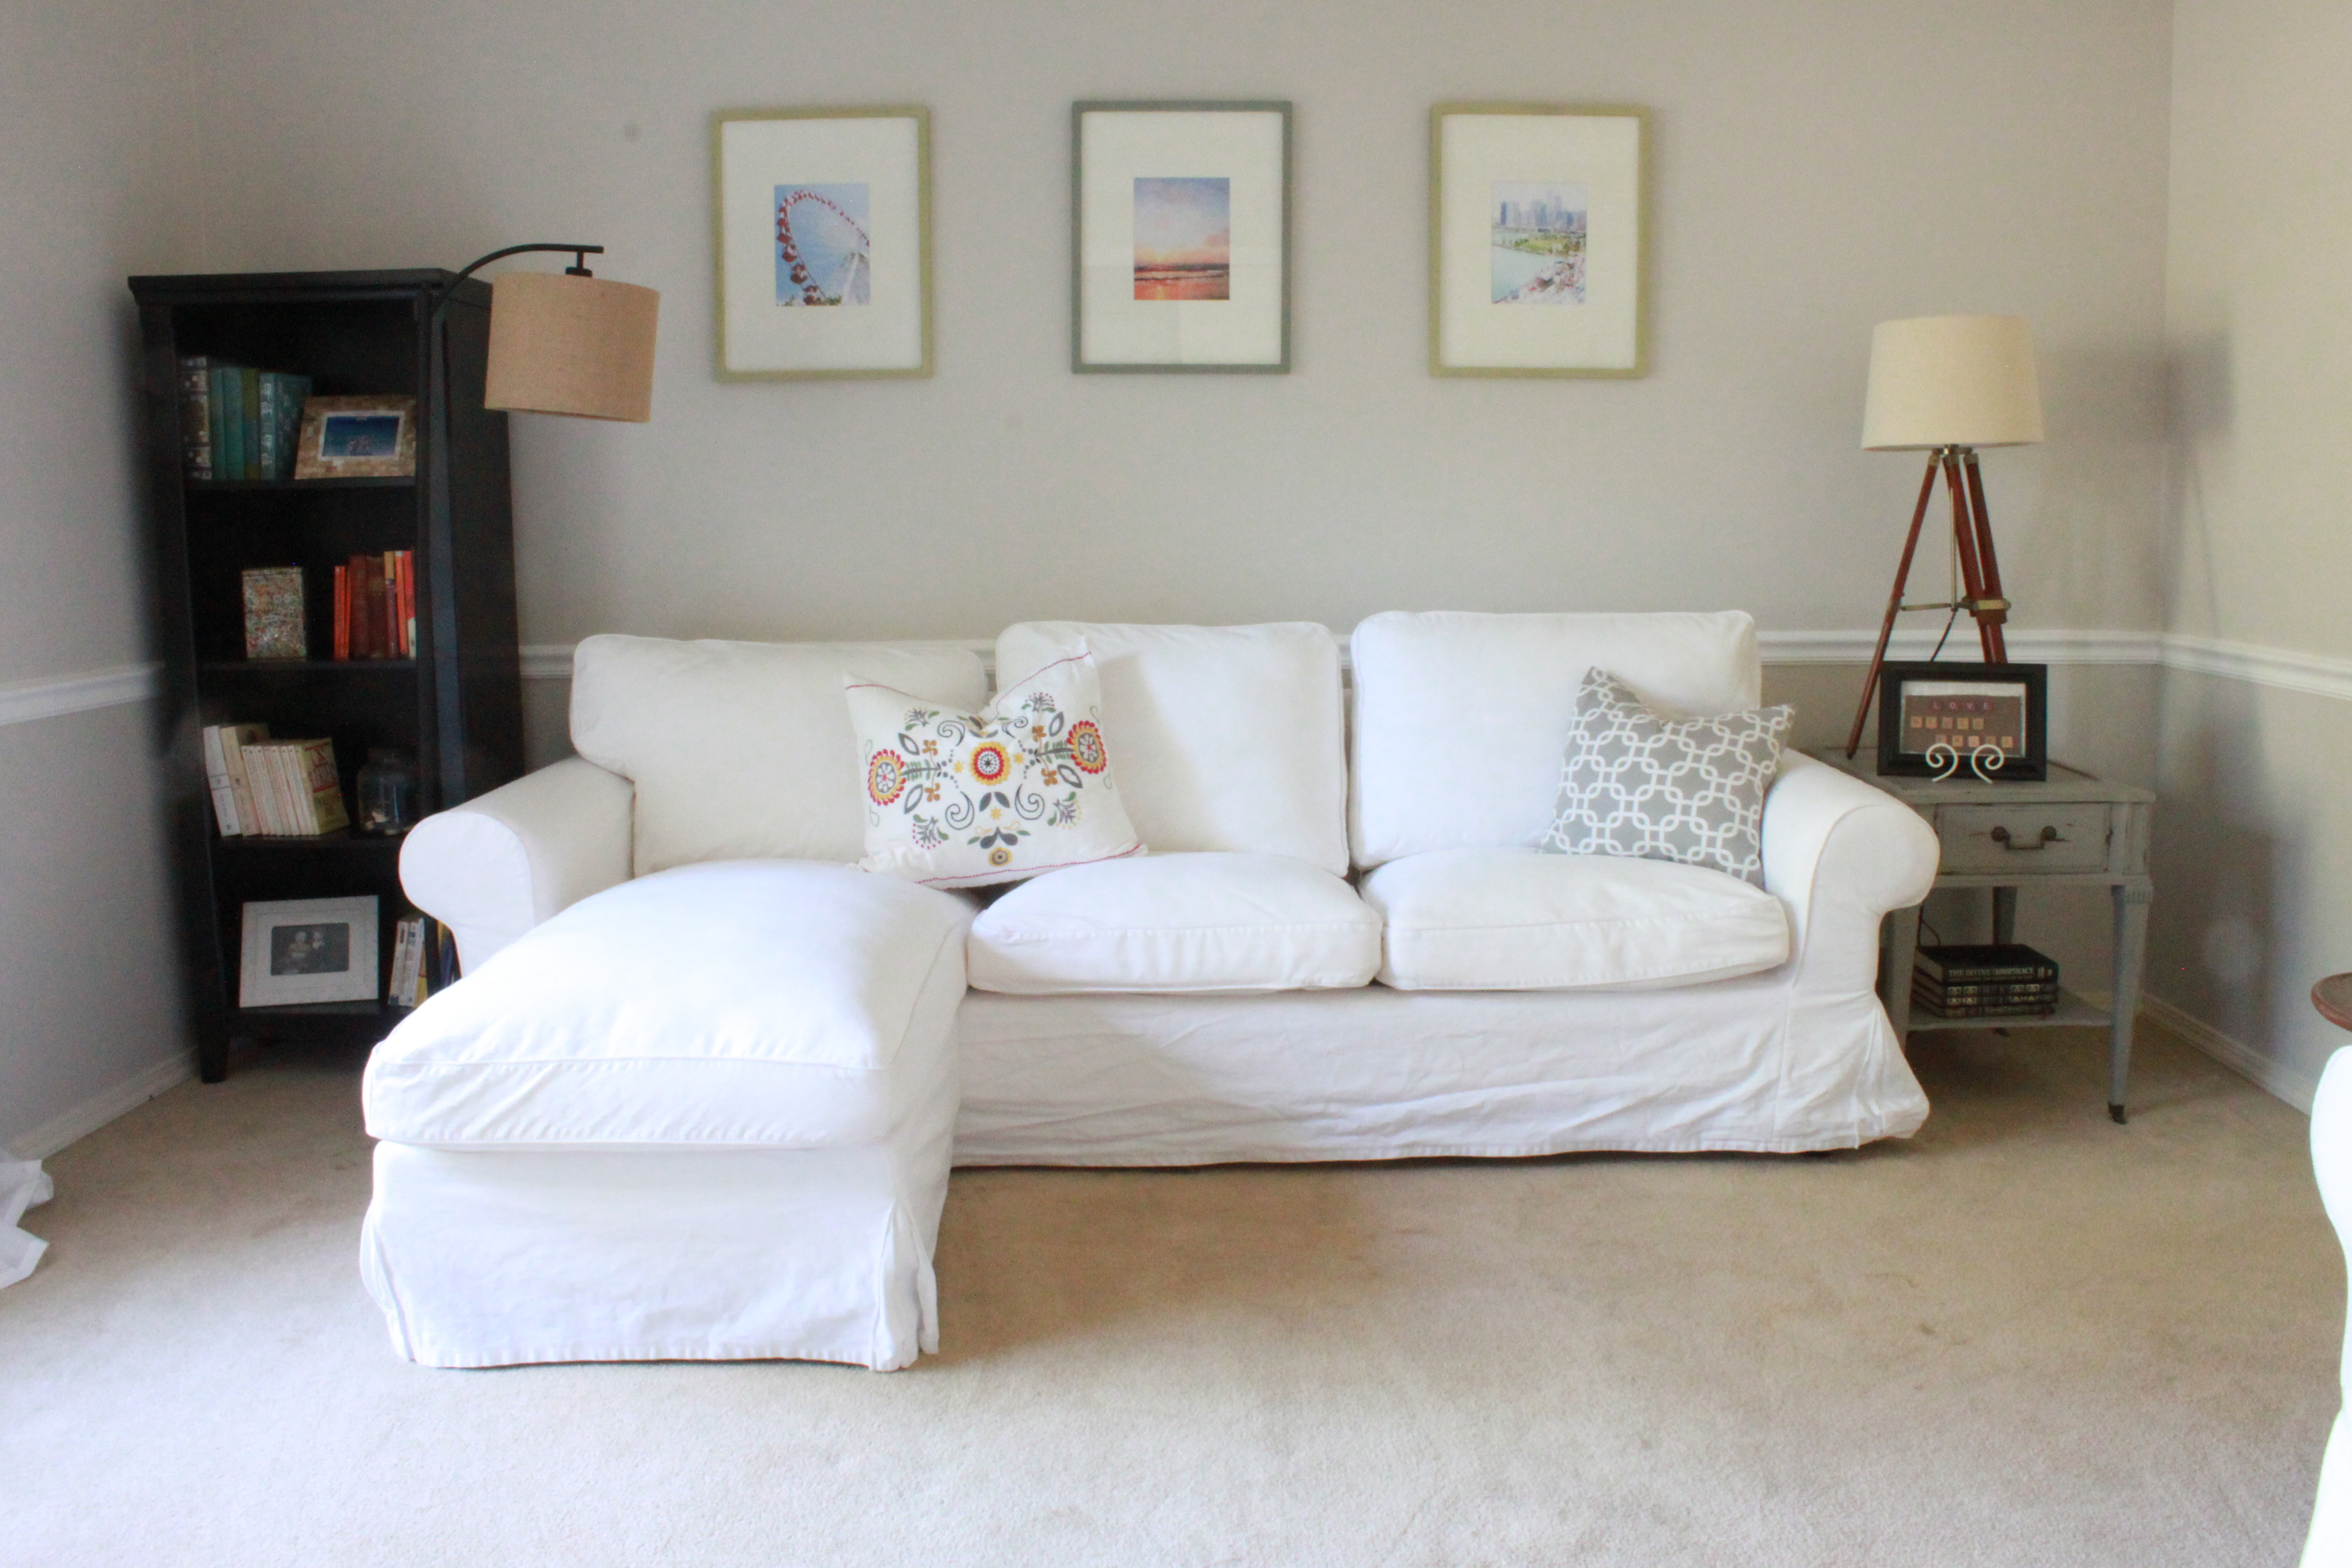 Switching Instead of Buying | All Things New Interiors